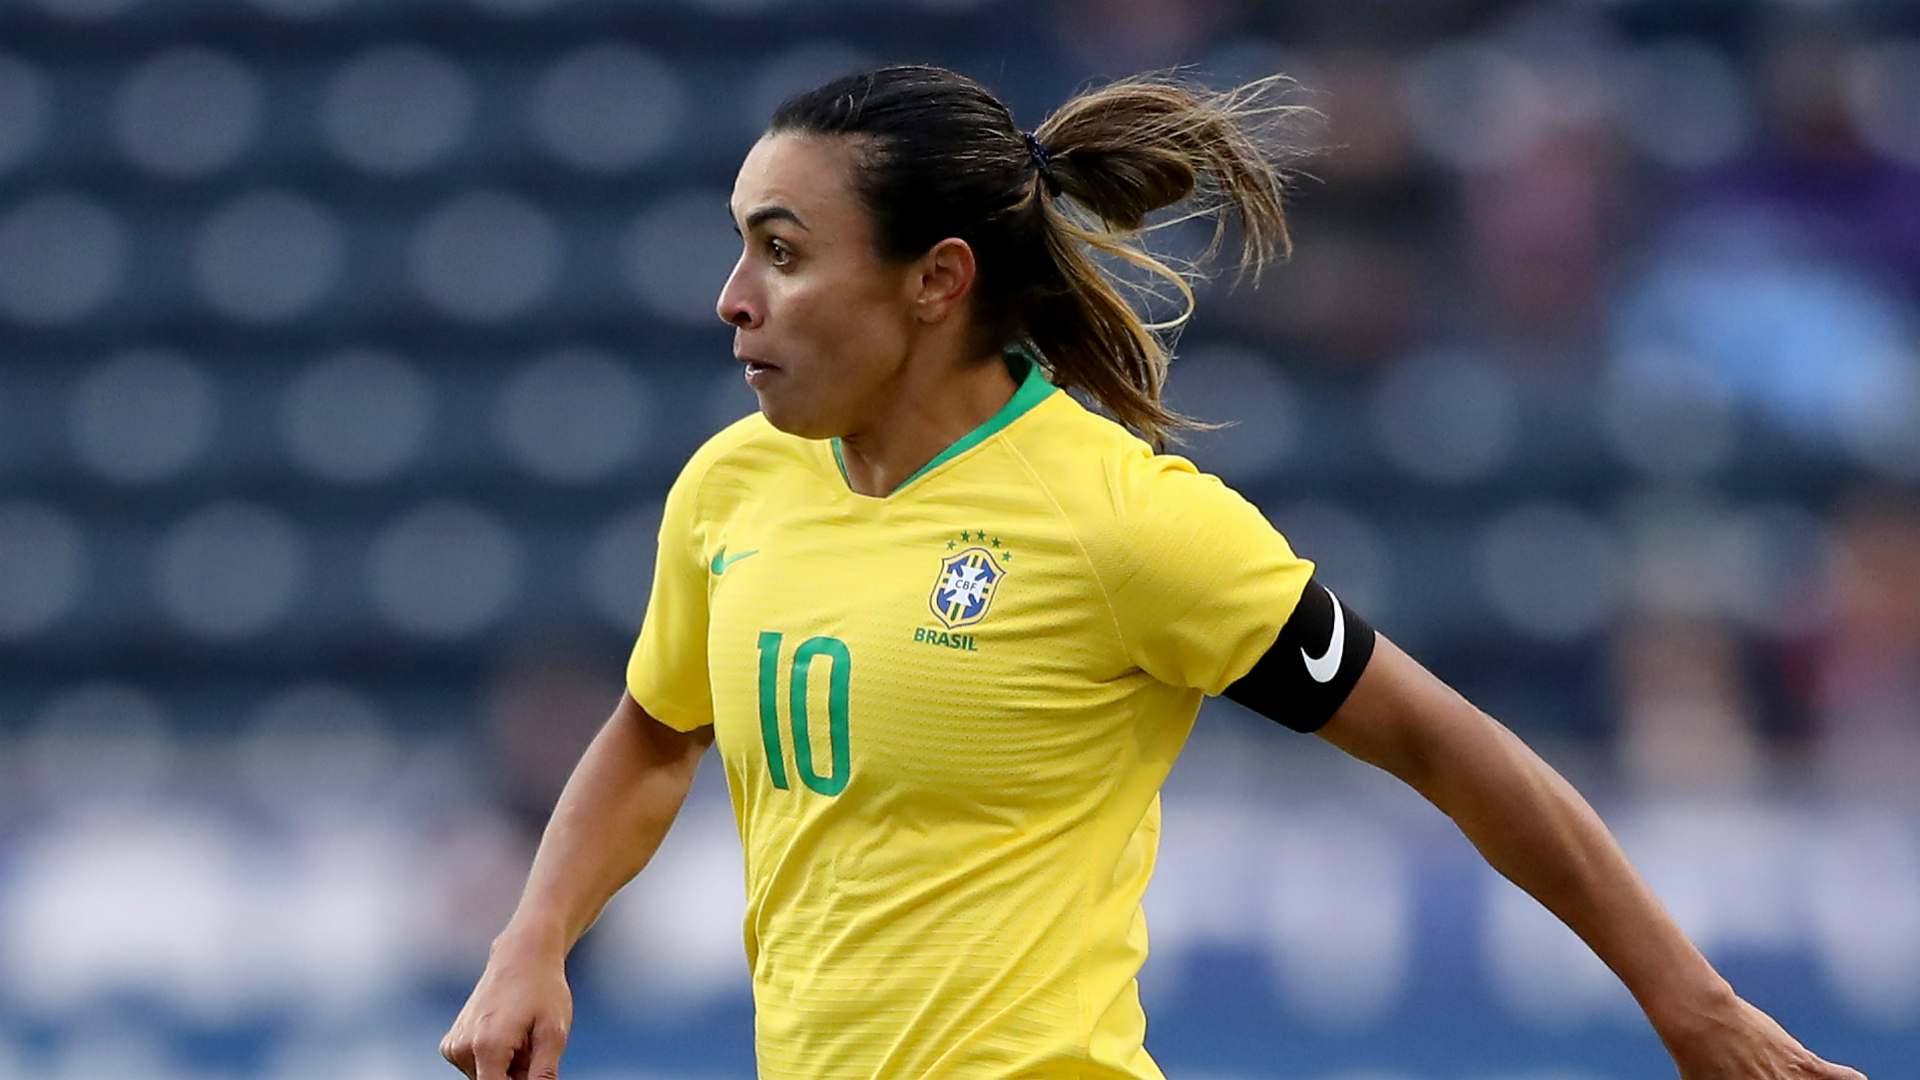 FRANCE 2019: Brazil star Marta to miss Reggae Girlz clash on Sunday